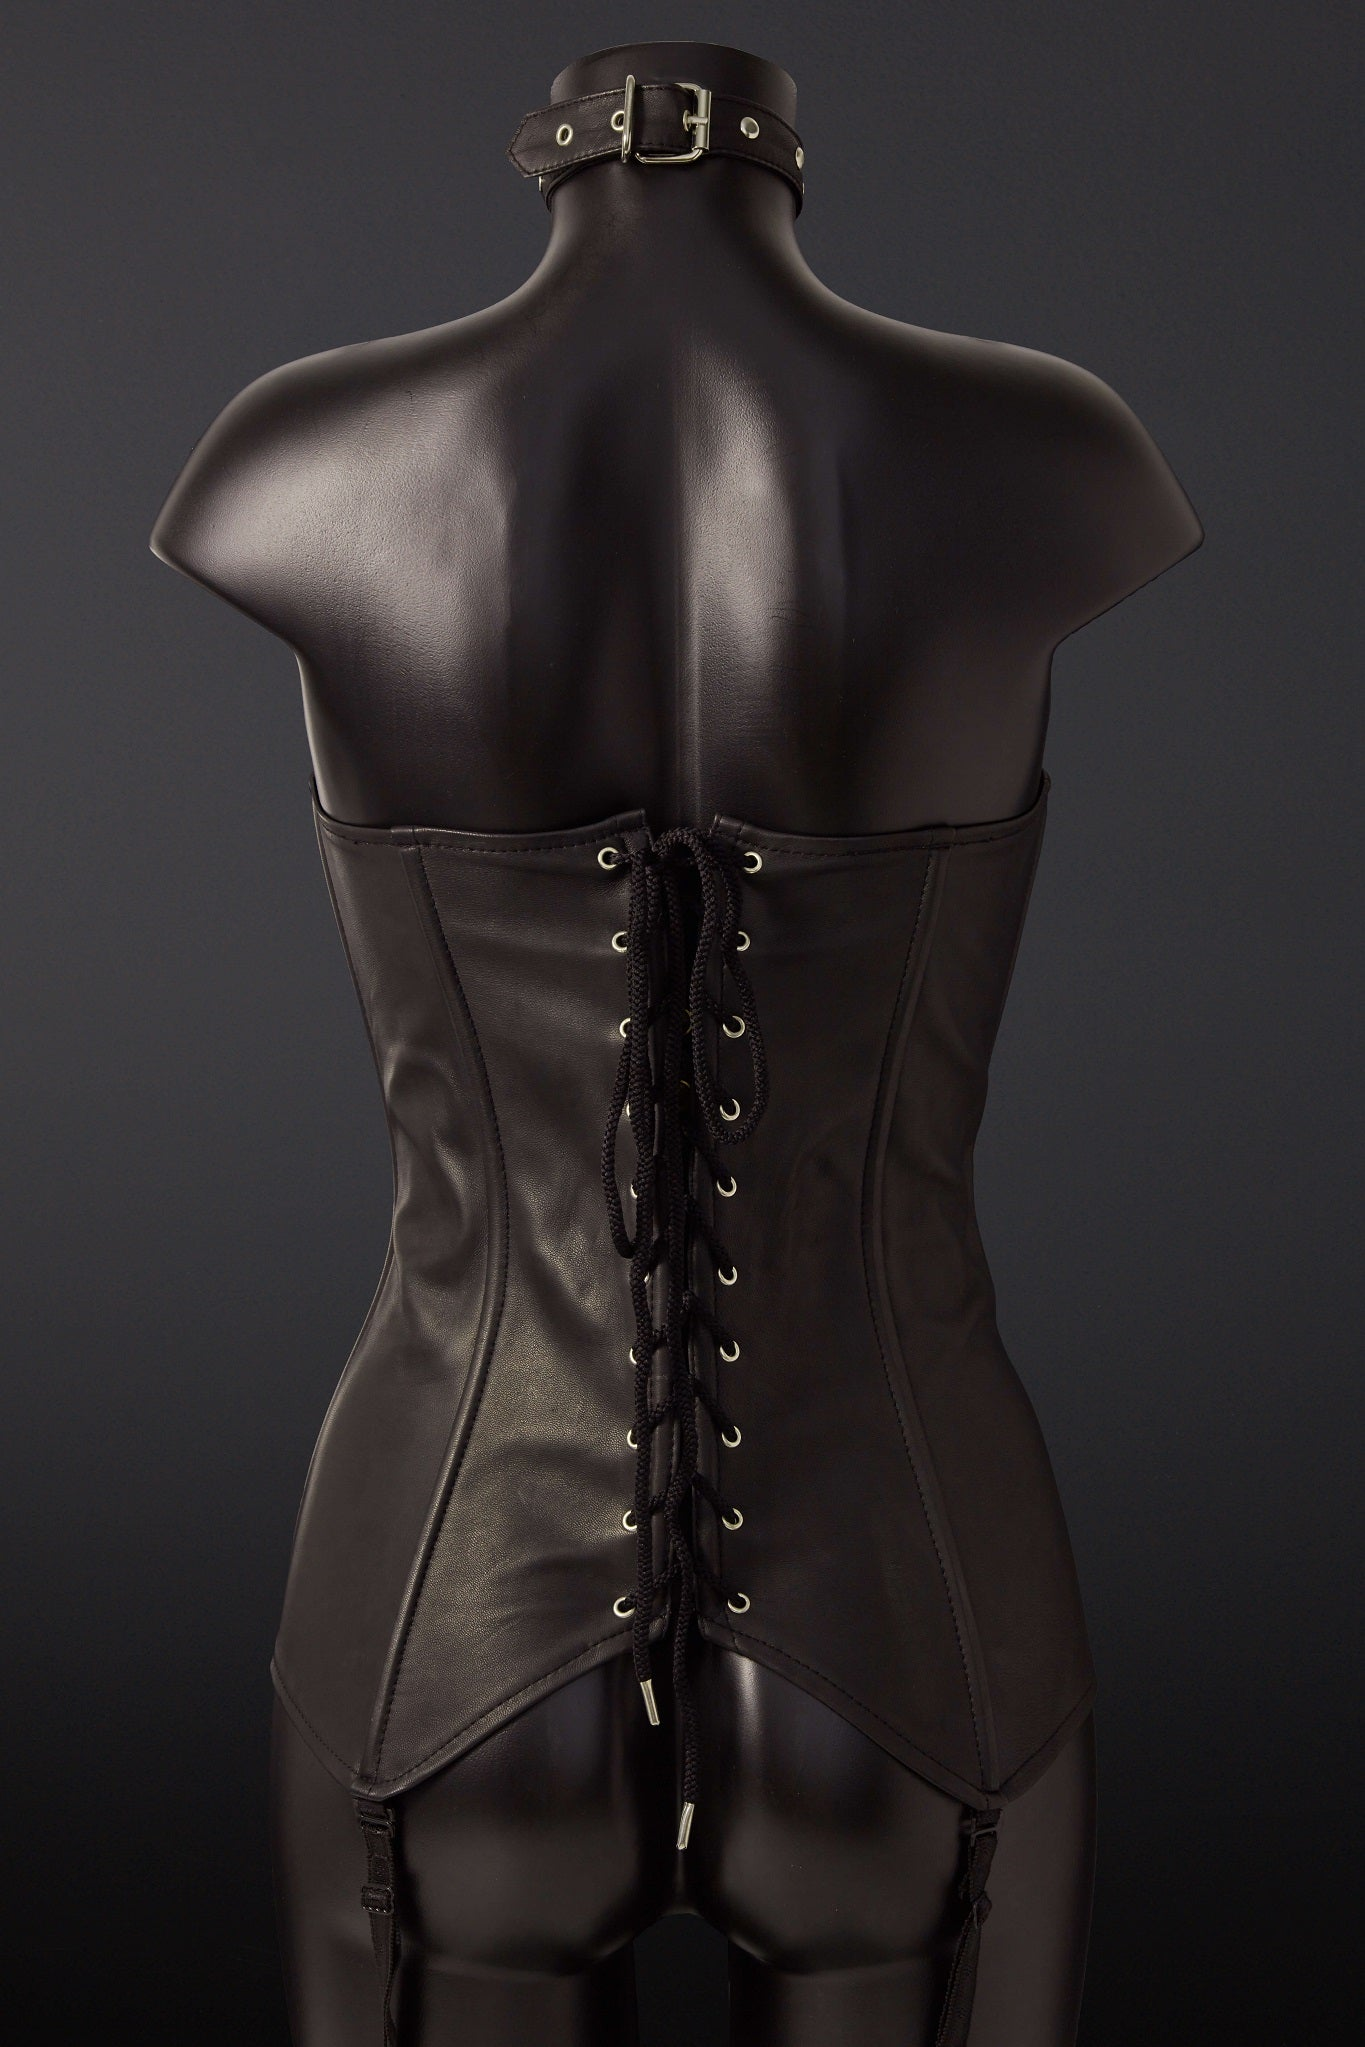 House of SXN Leather Sense Black Leather Corset